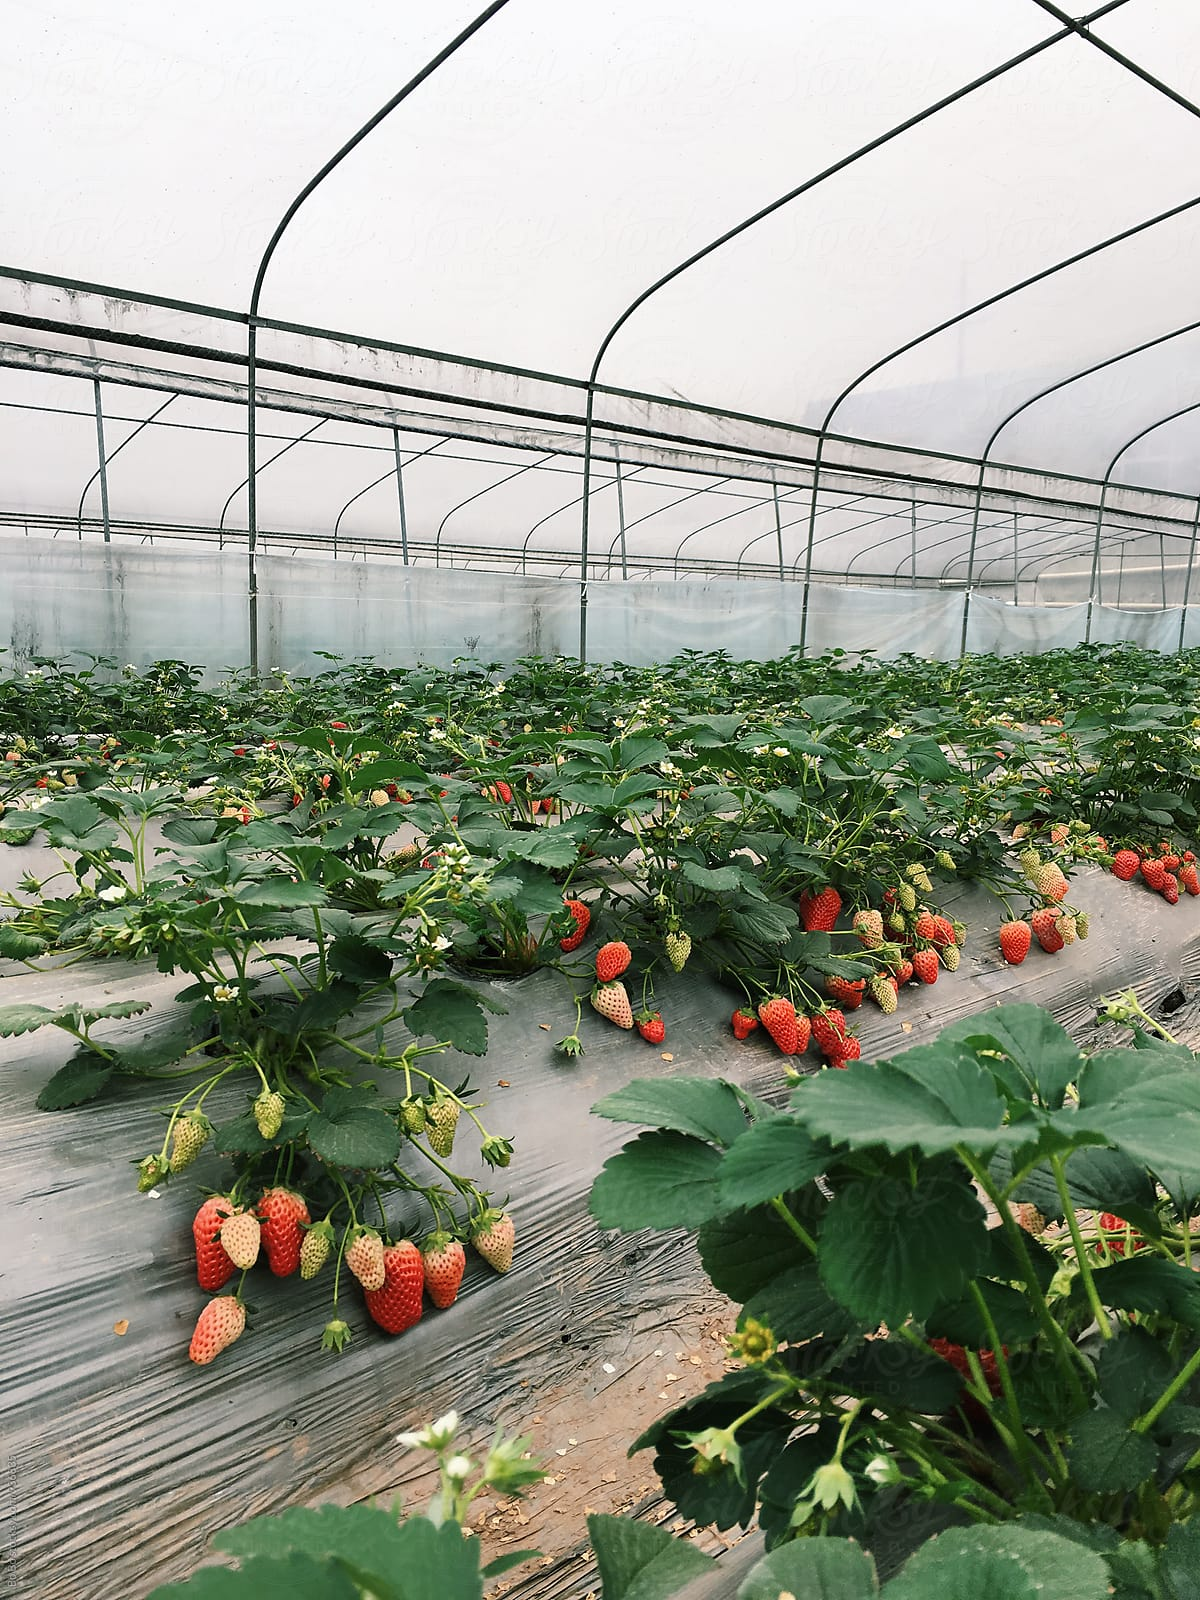 strawberry farm by Bo Bo - Strawberry, Greenhouse - Stocksy ... on indoor plants, watering plants, farm plants, pruning plants, how grow zinnia plants, pepper plants, sci-fi plants, fertilizing plants, bayou plants, landscaping plants, tomatoes plants, annuals plants, cartoon fern plants, history plants, nursery plants, green plants, water plants, potted plants, tropical plants, horticulture plants,